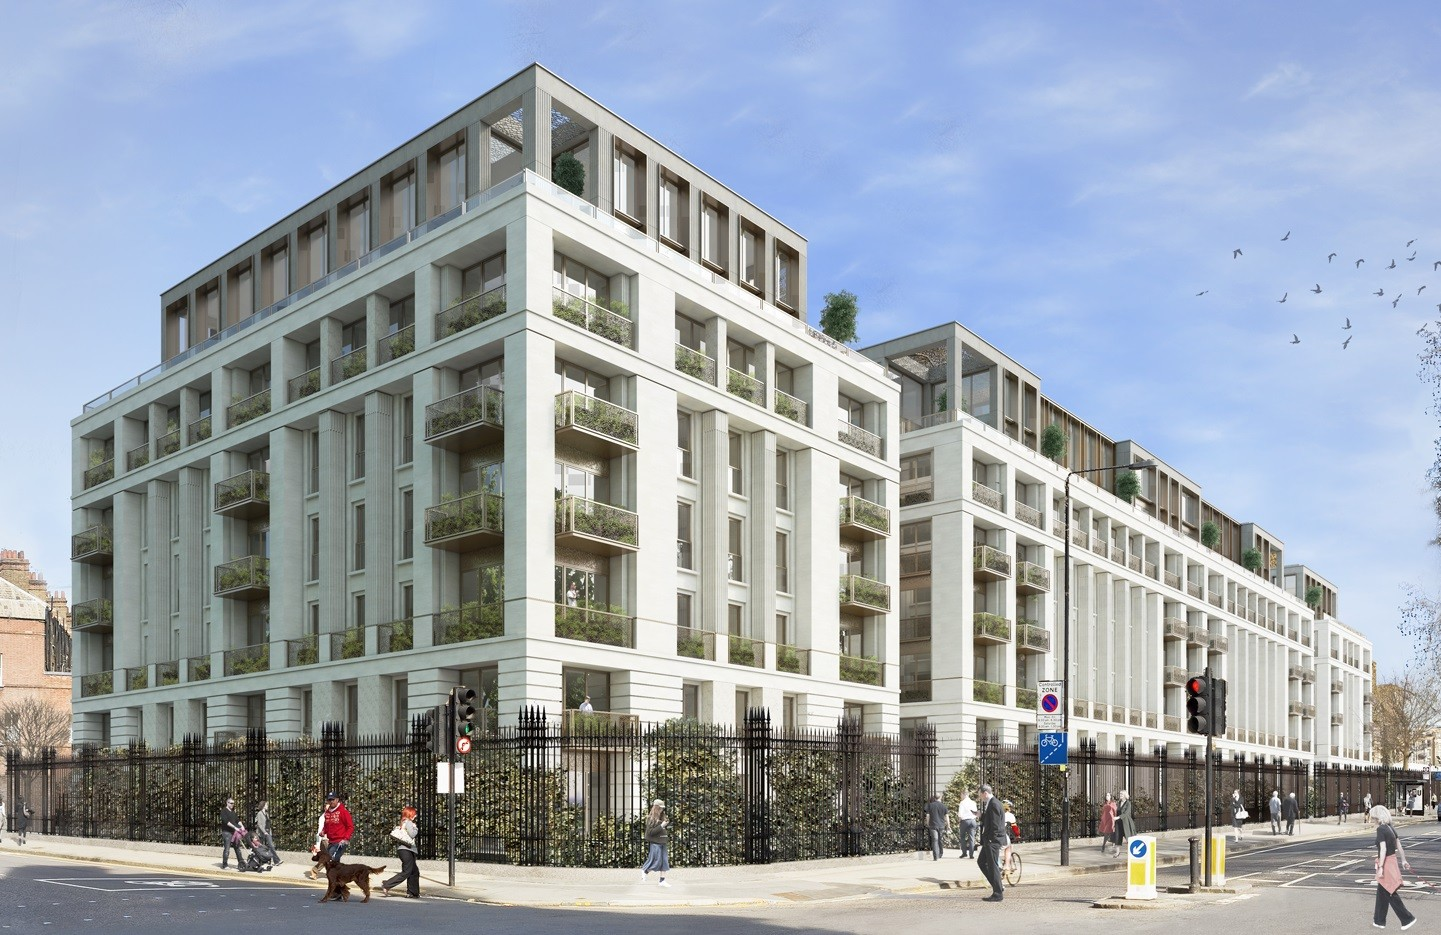 Planning Finally Granted for Chelsea Barracks Scheme, Courtesy of Squire and Partners